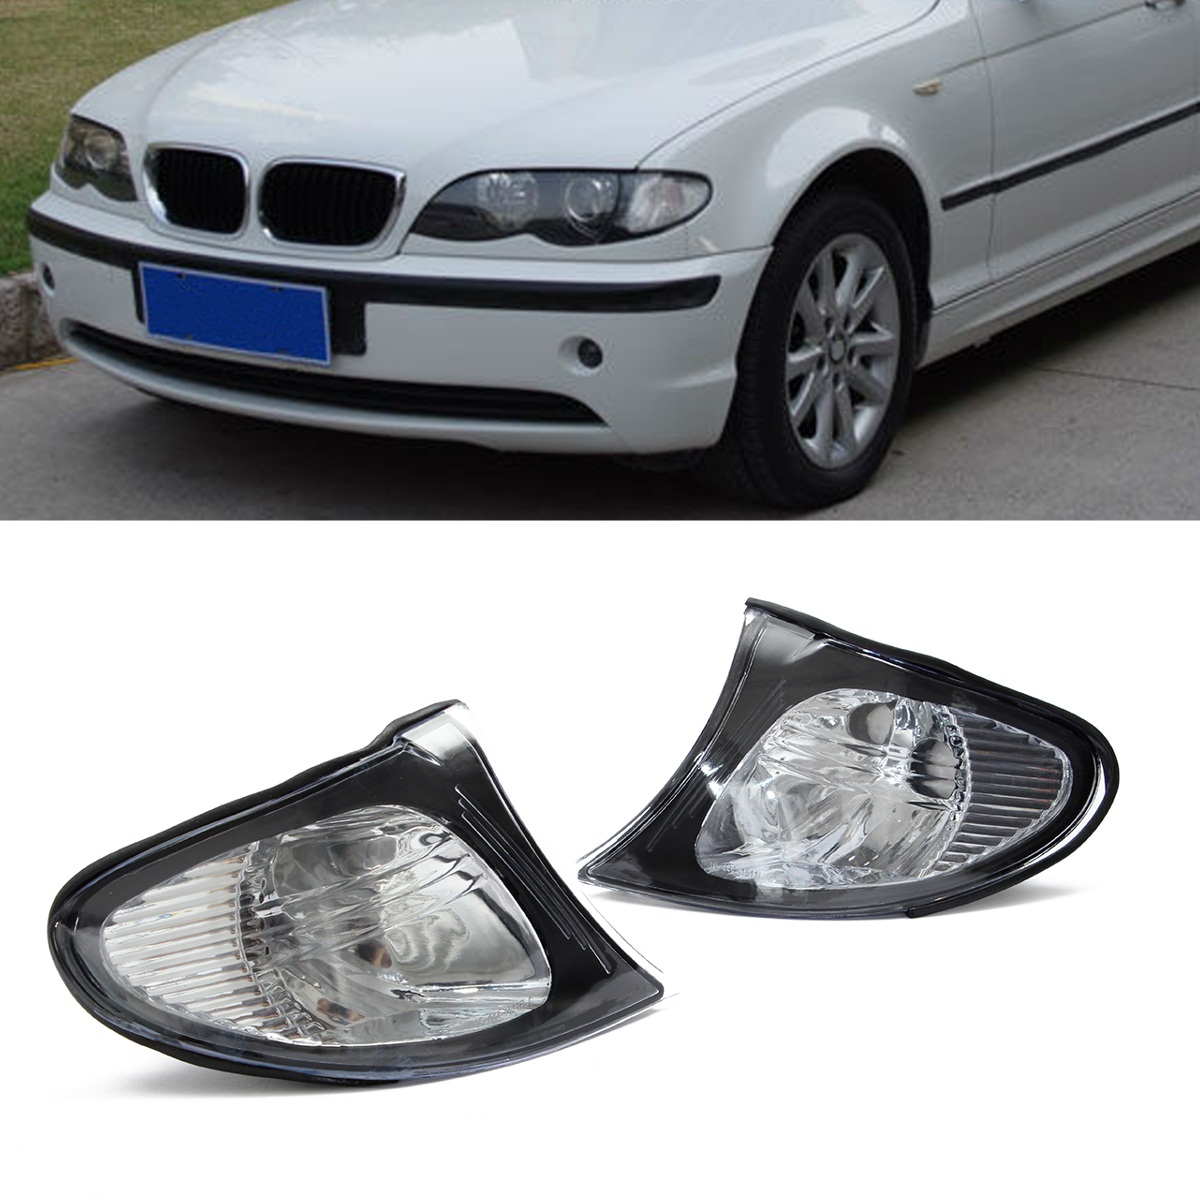 Pair Brand New Car Corner Lights Sidelights Lens Clear Left&Right For BMW E46 3-Series 325i 325xi 330i 330xi 4DR 2002-2005 new pair left